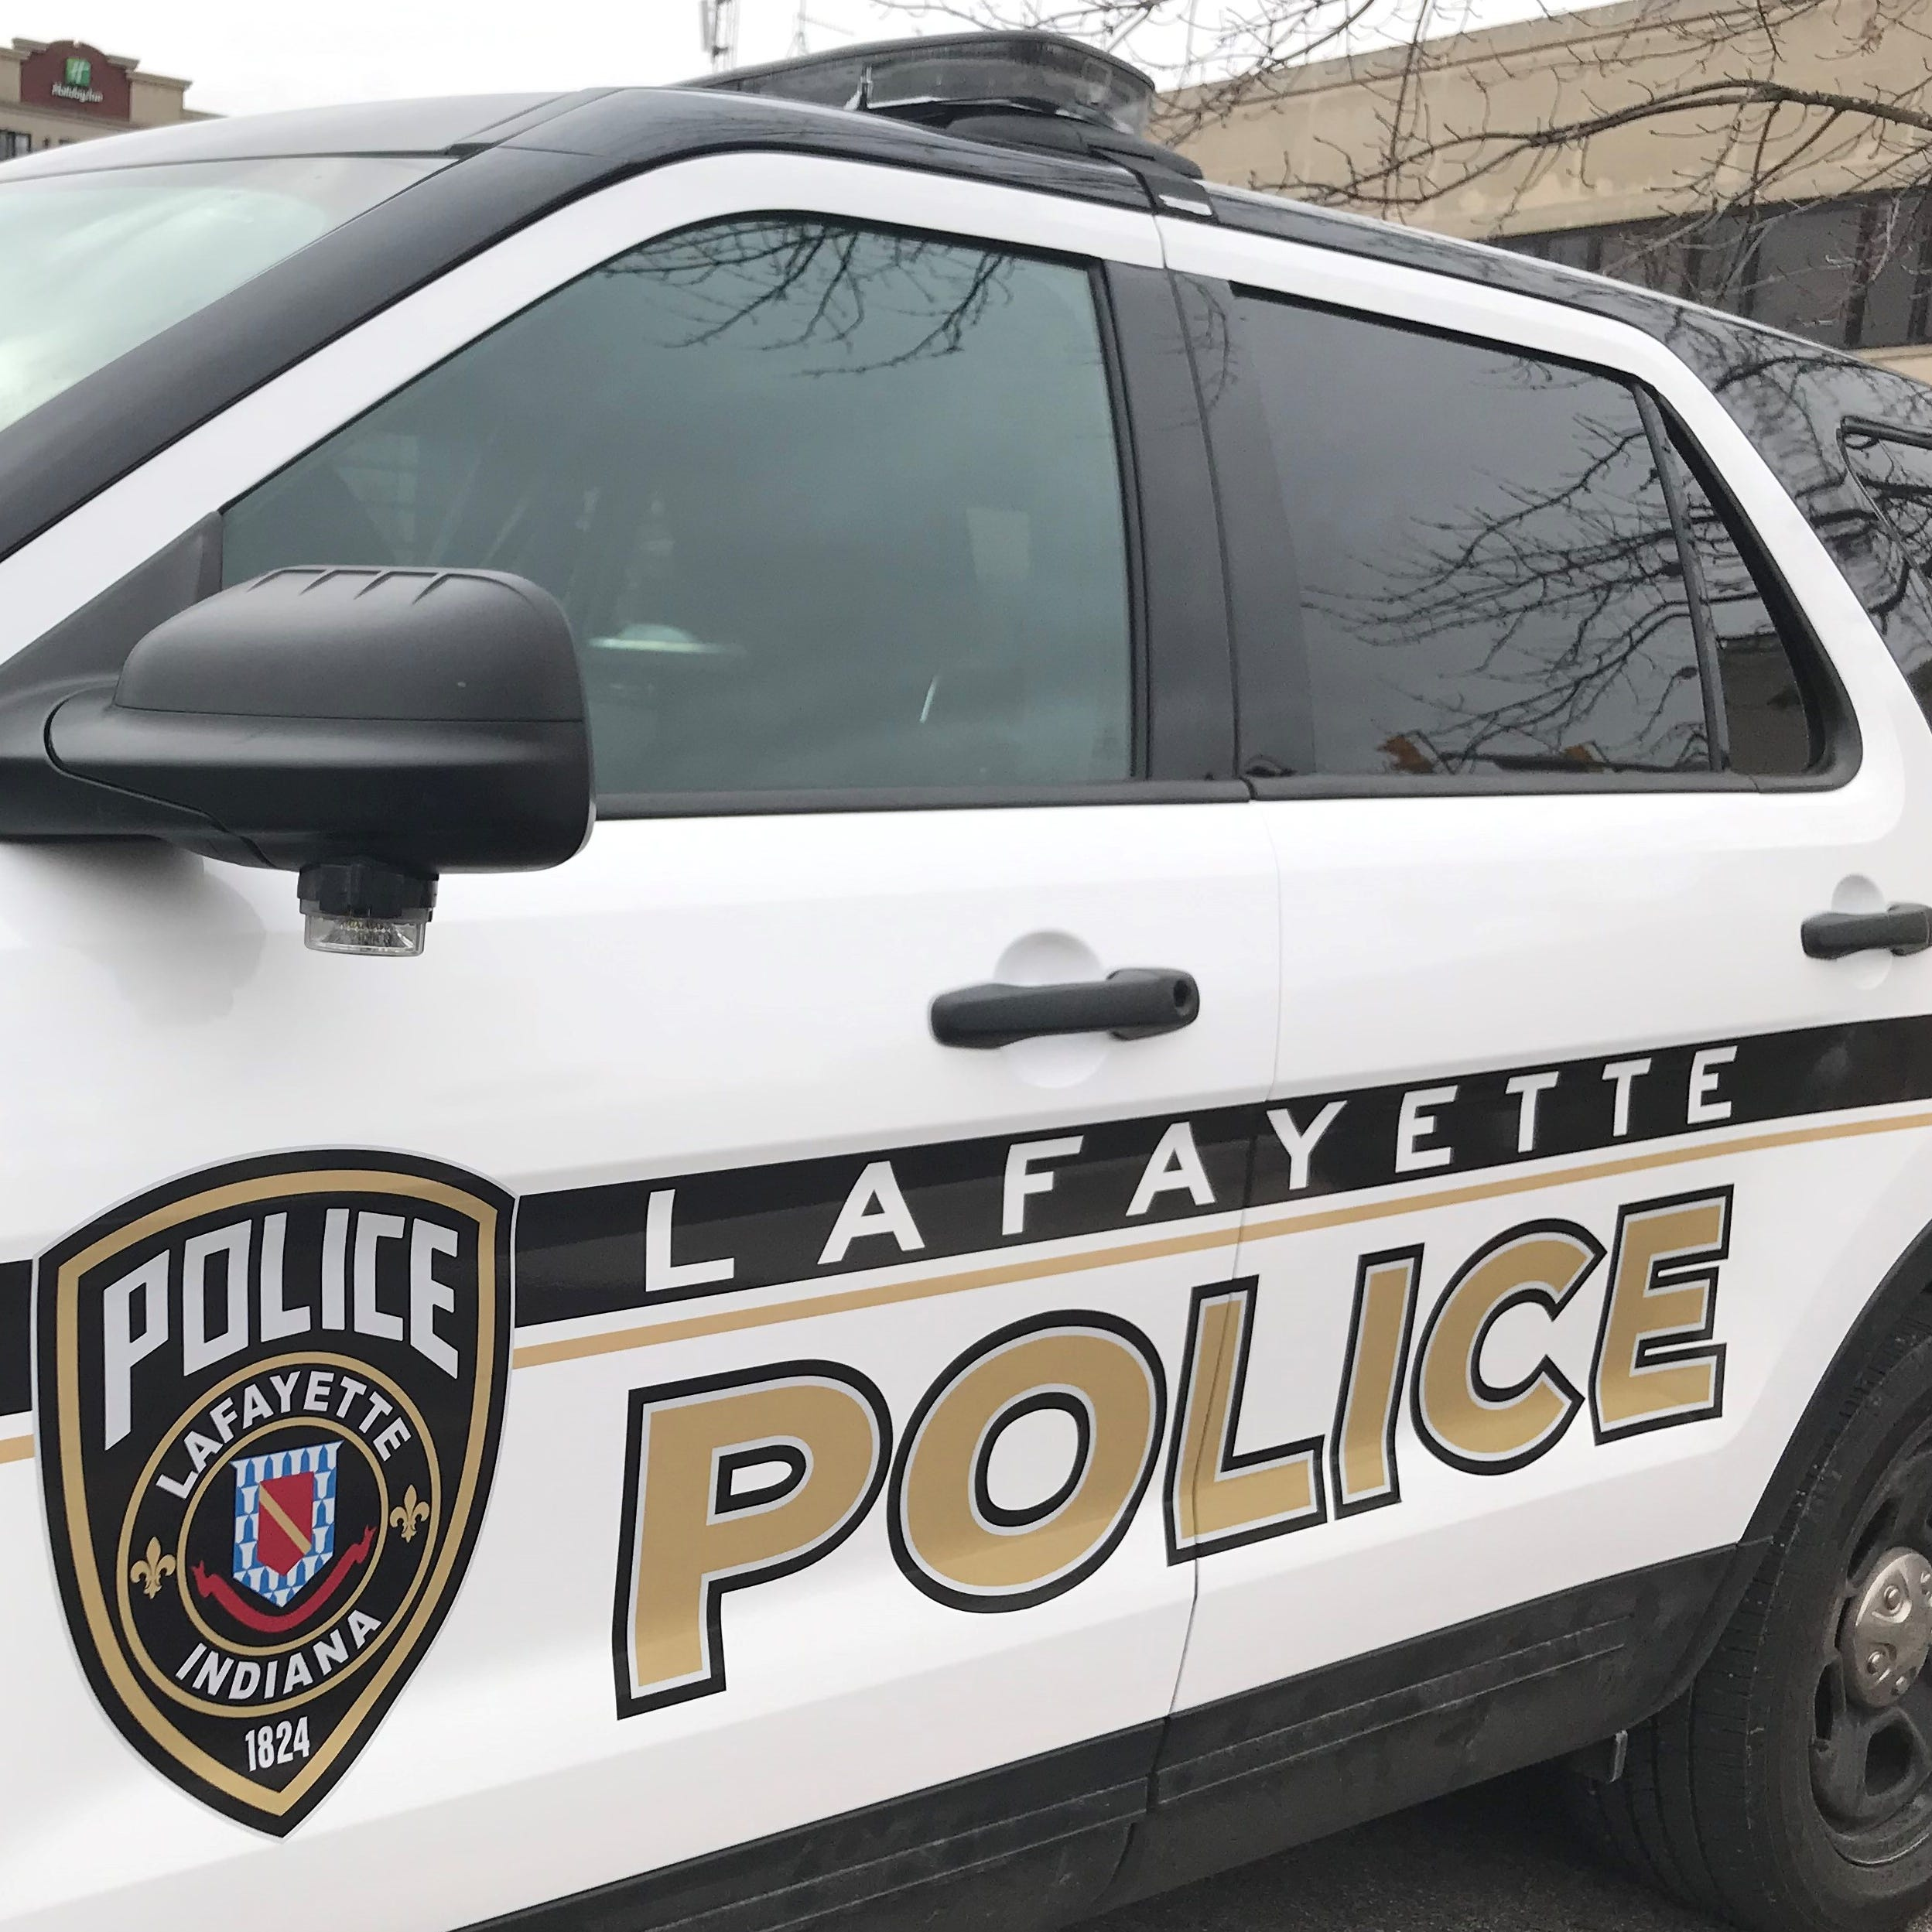 No foul play suspected in body found in alley